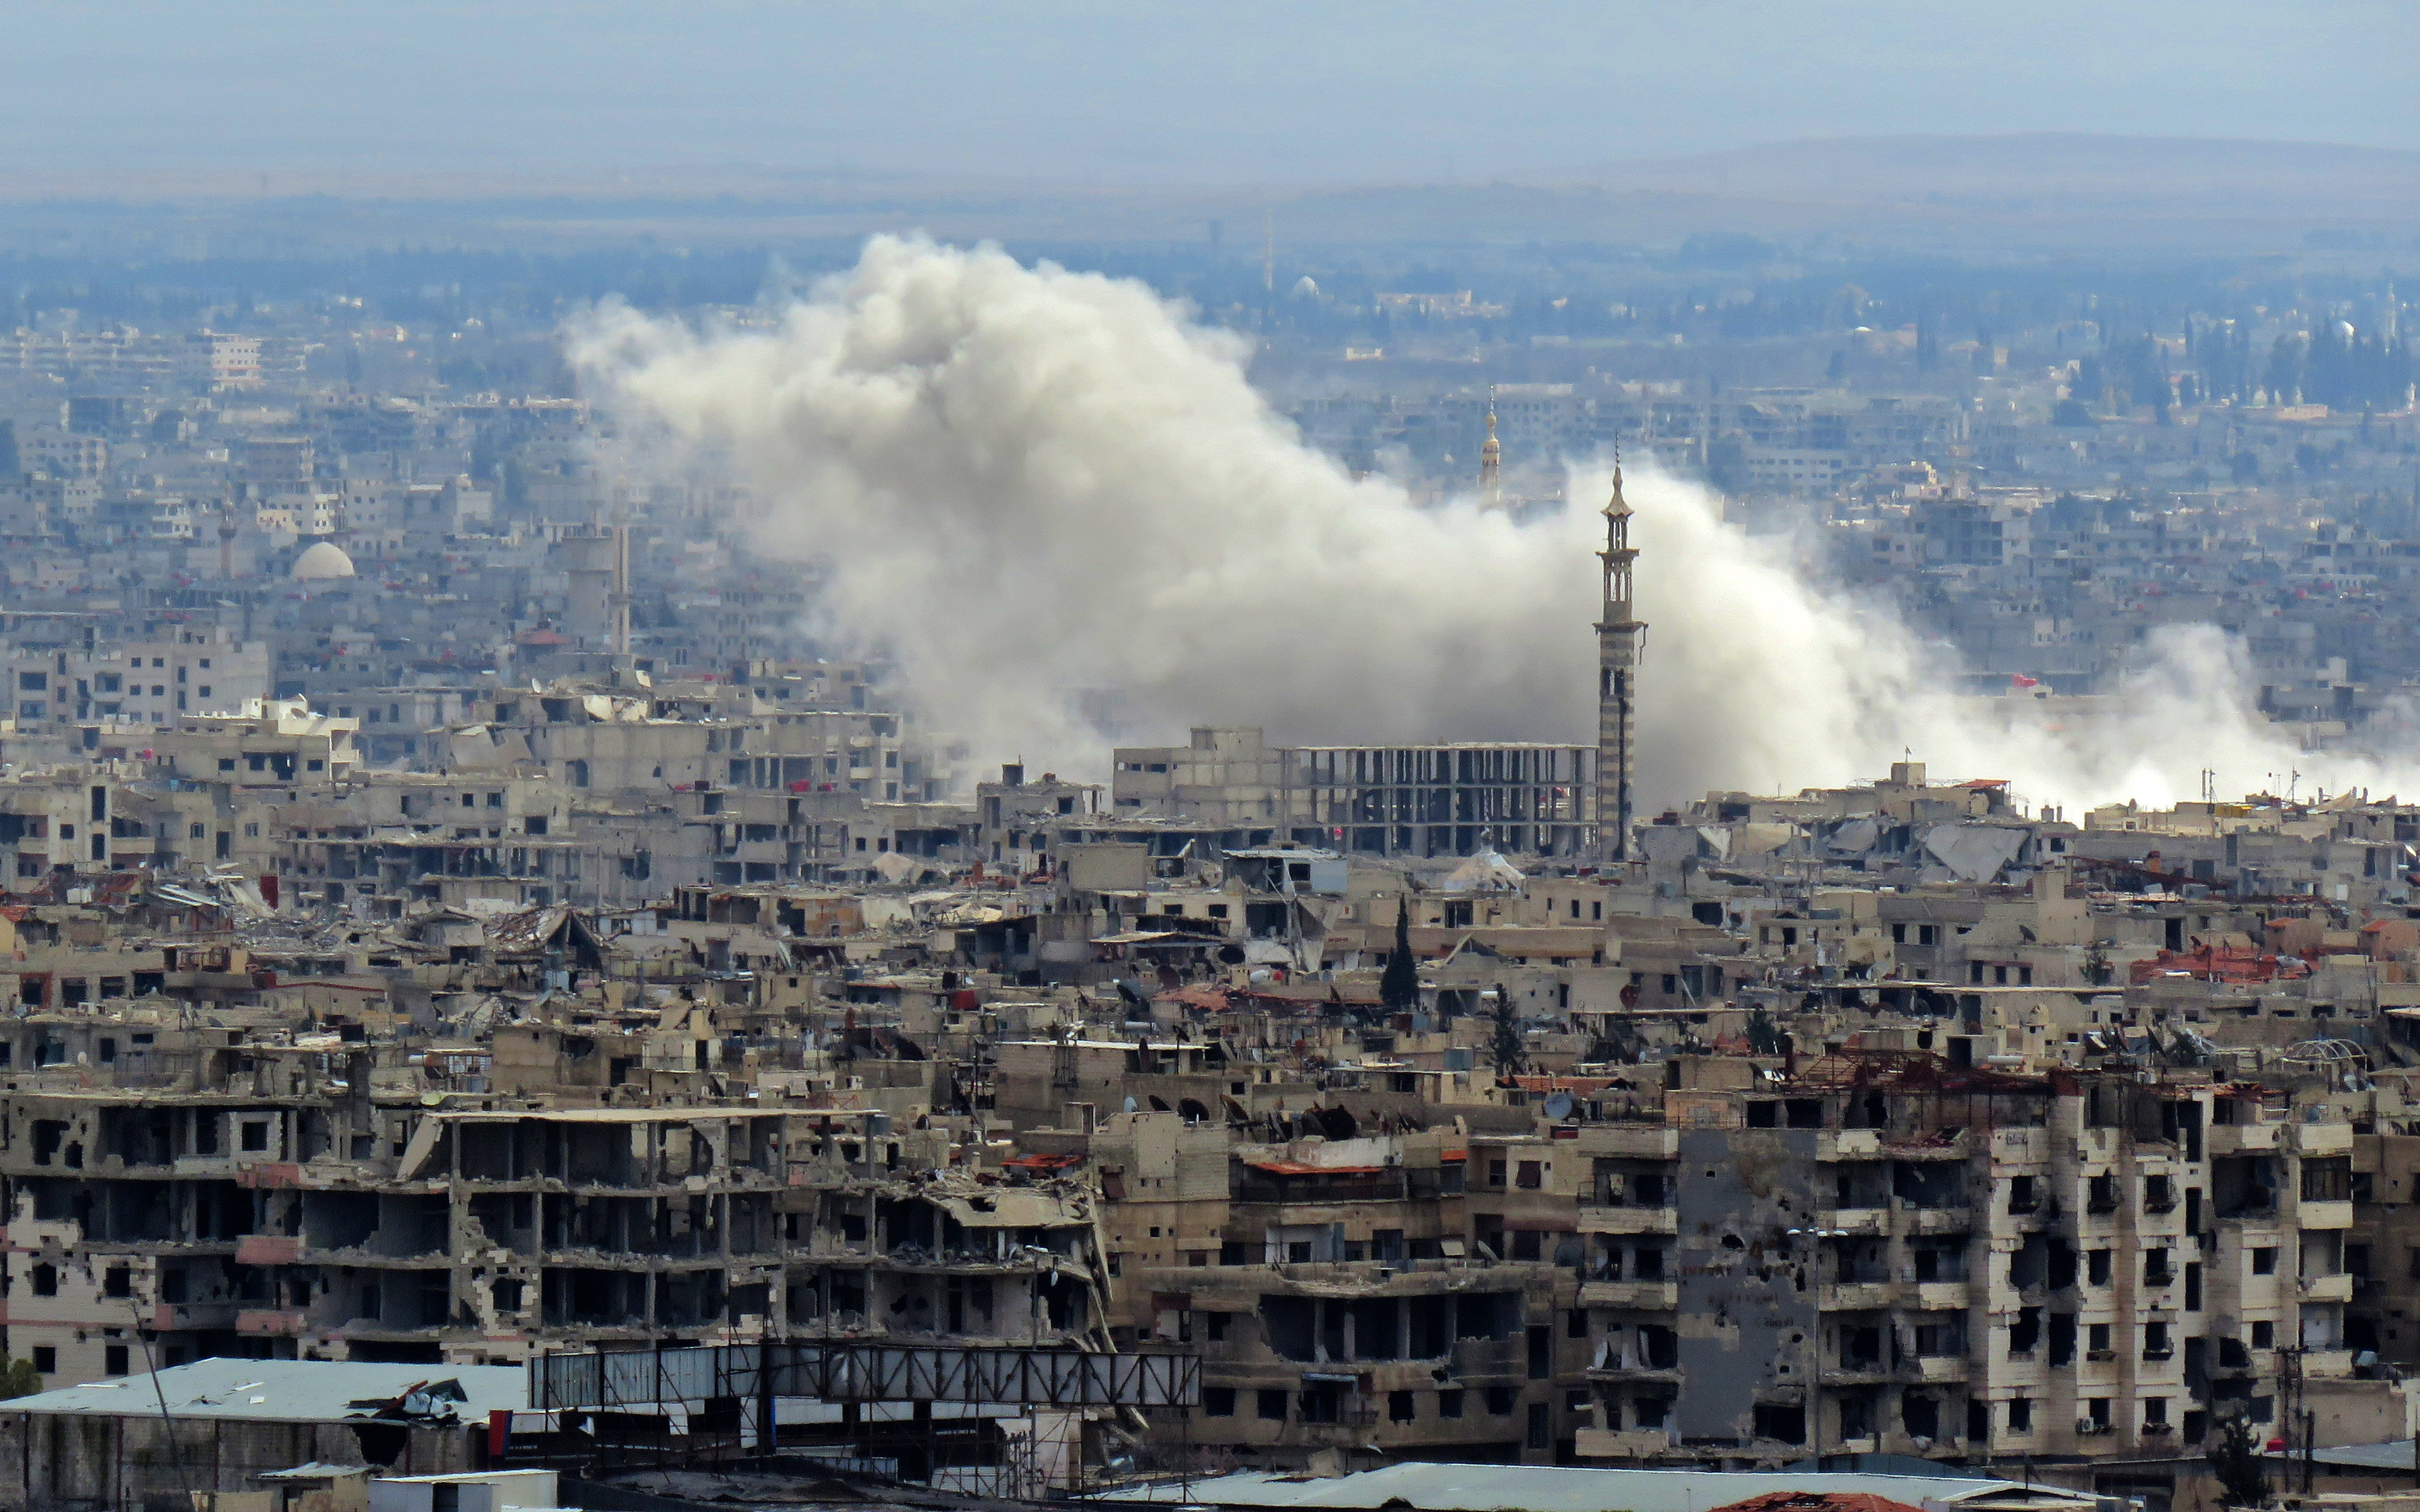 Aid convoy delivers food in Ghouta despite bombardment